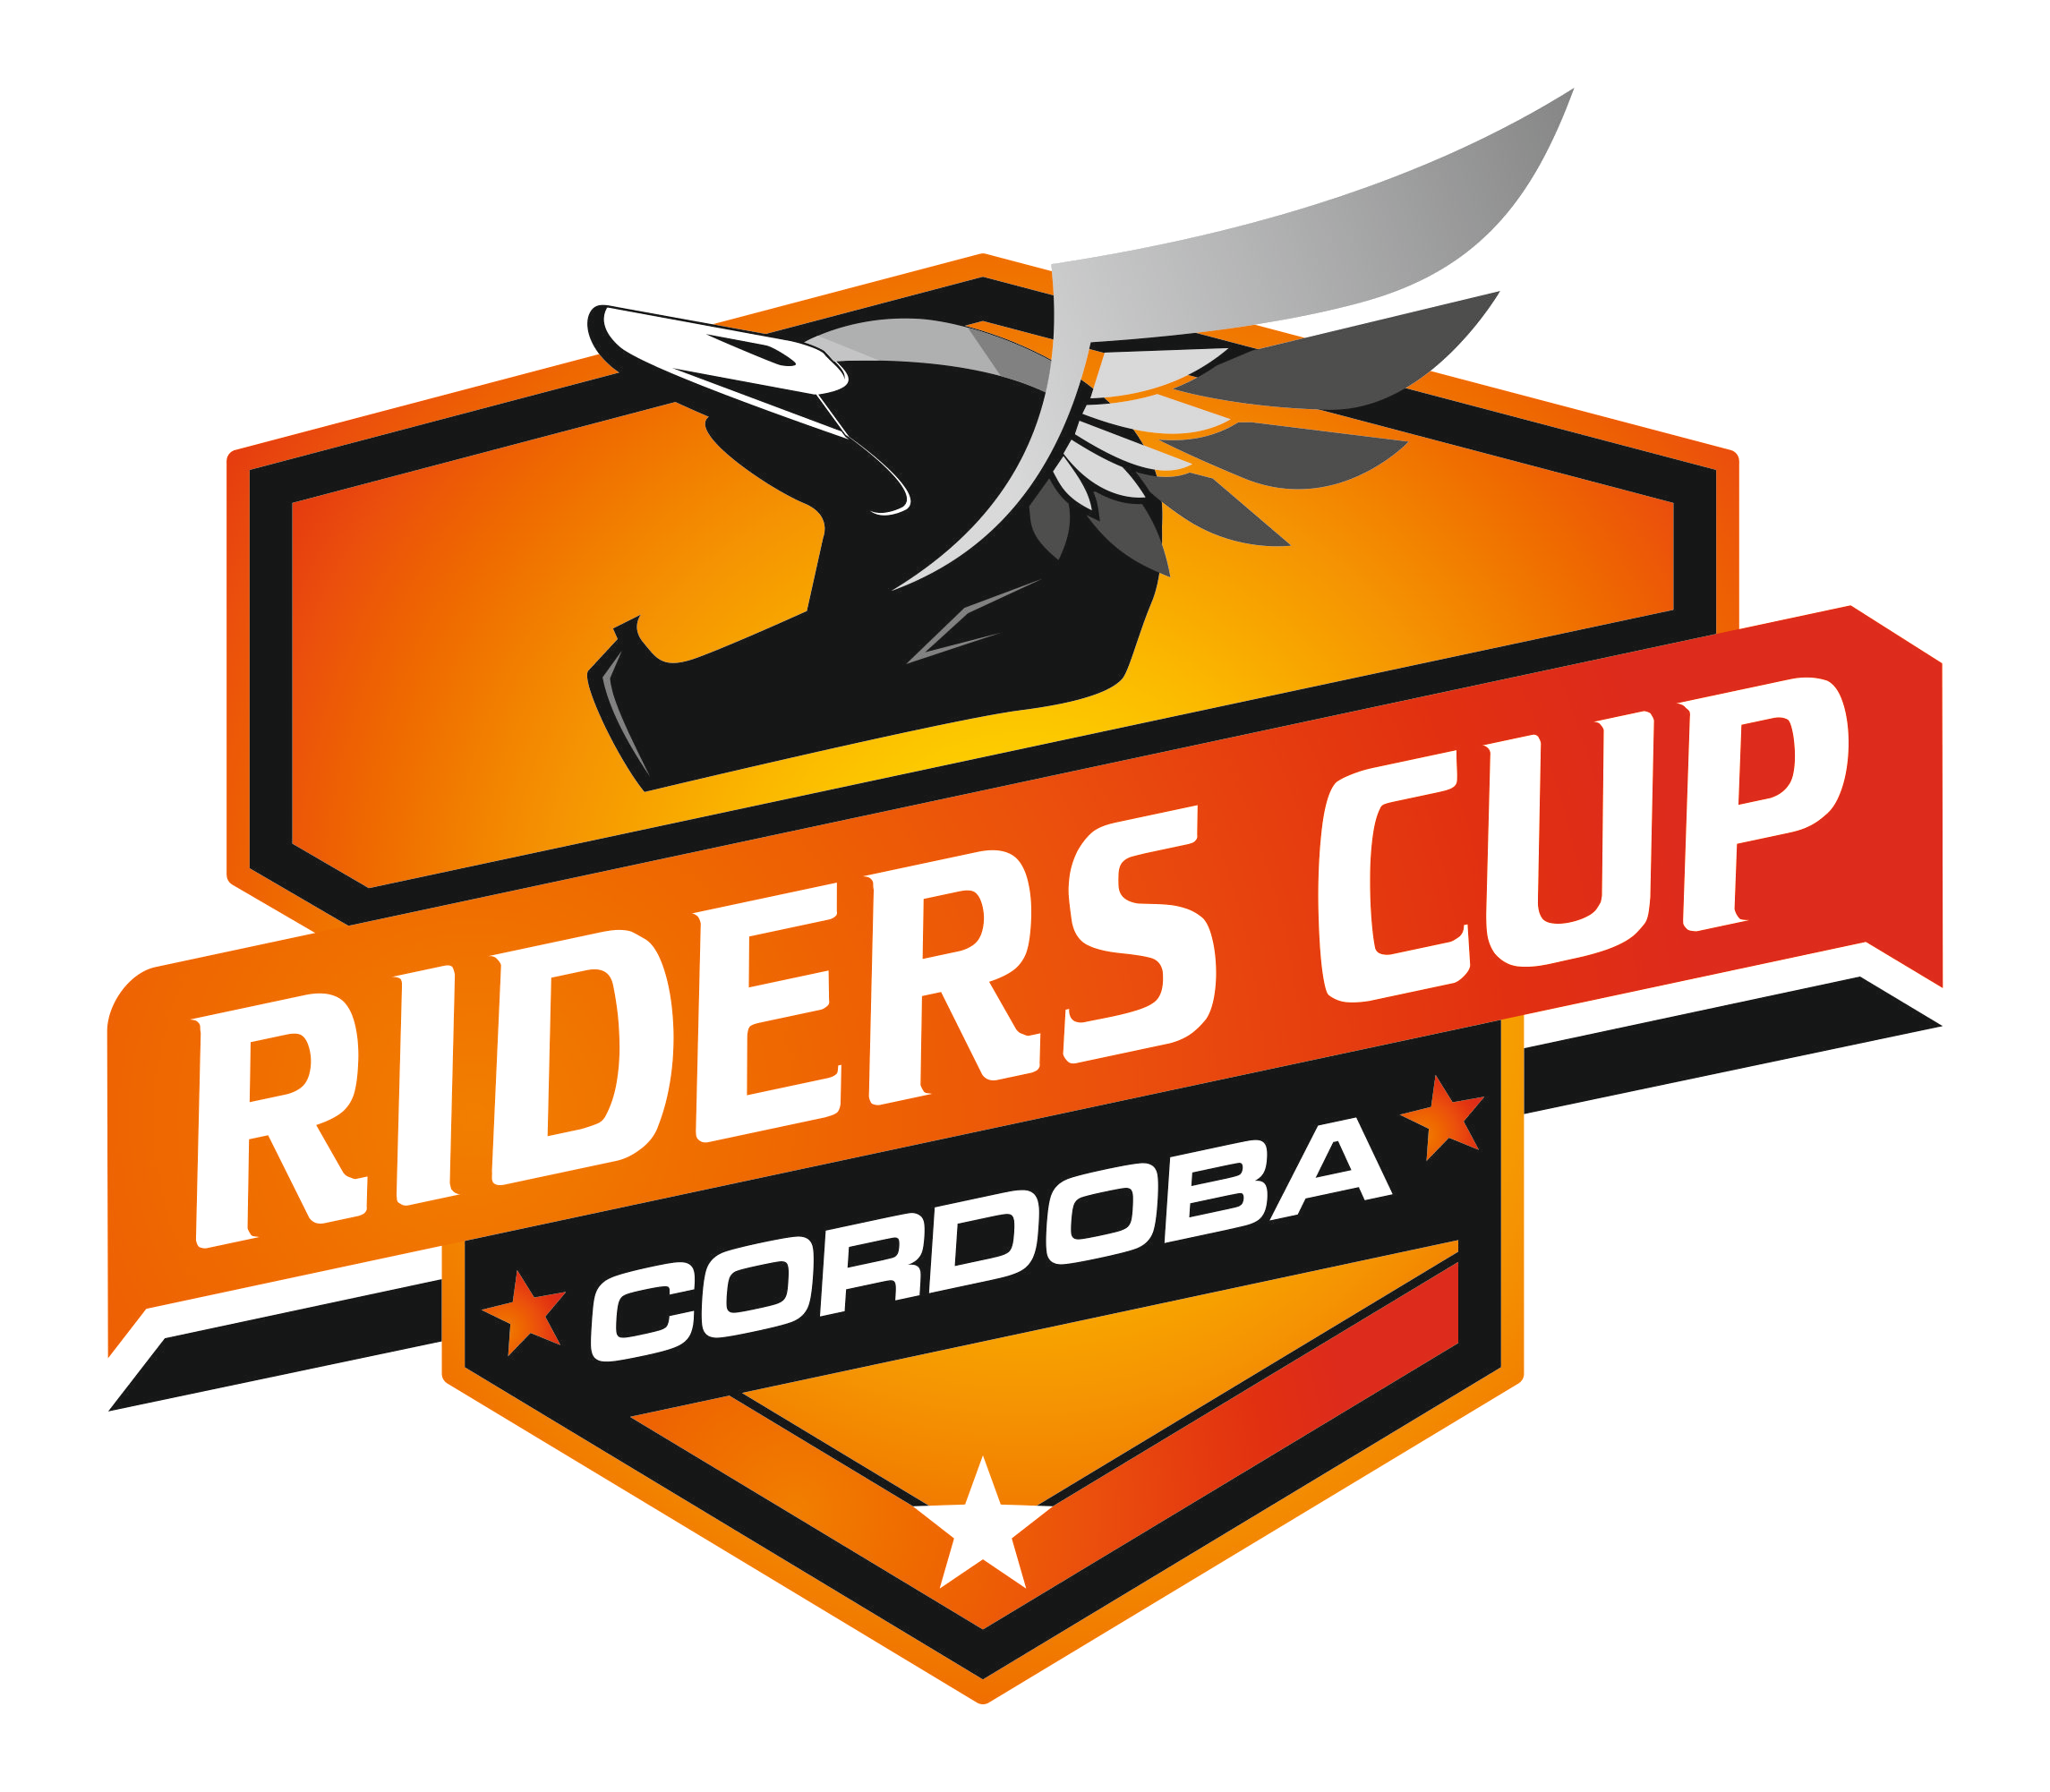 riderscup